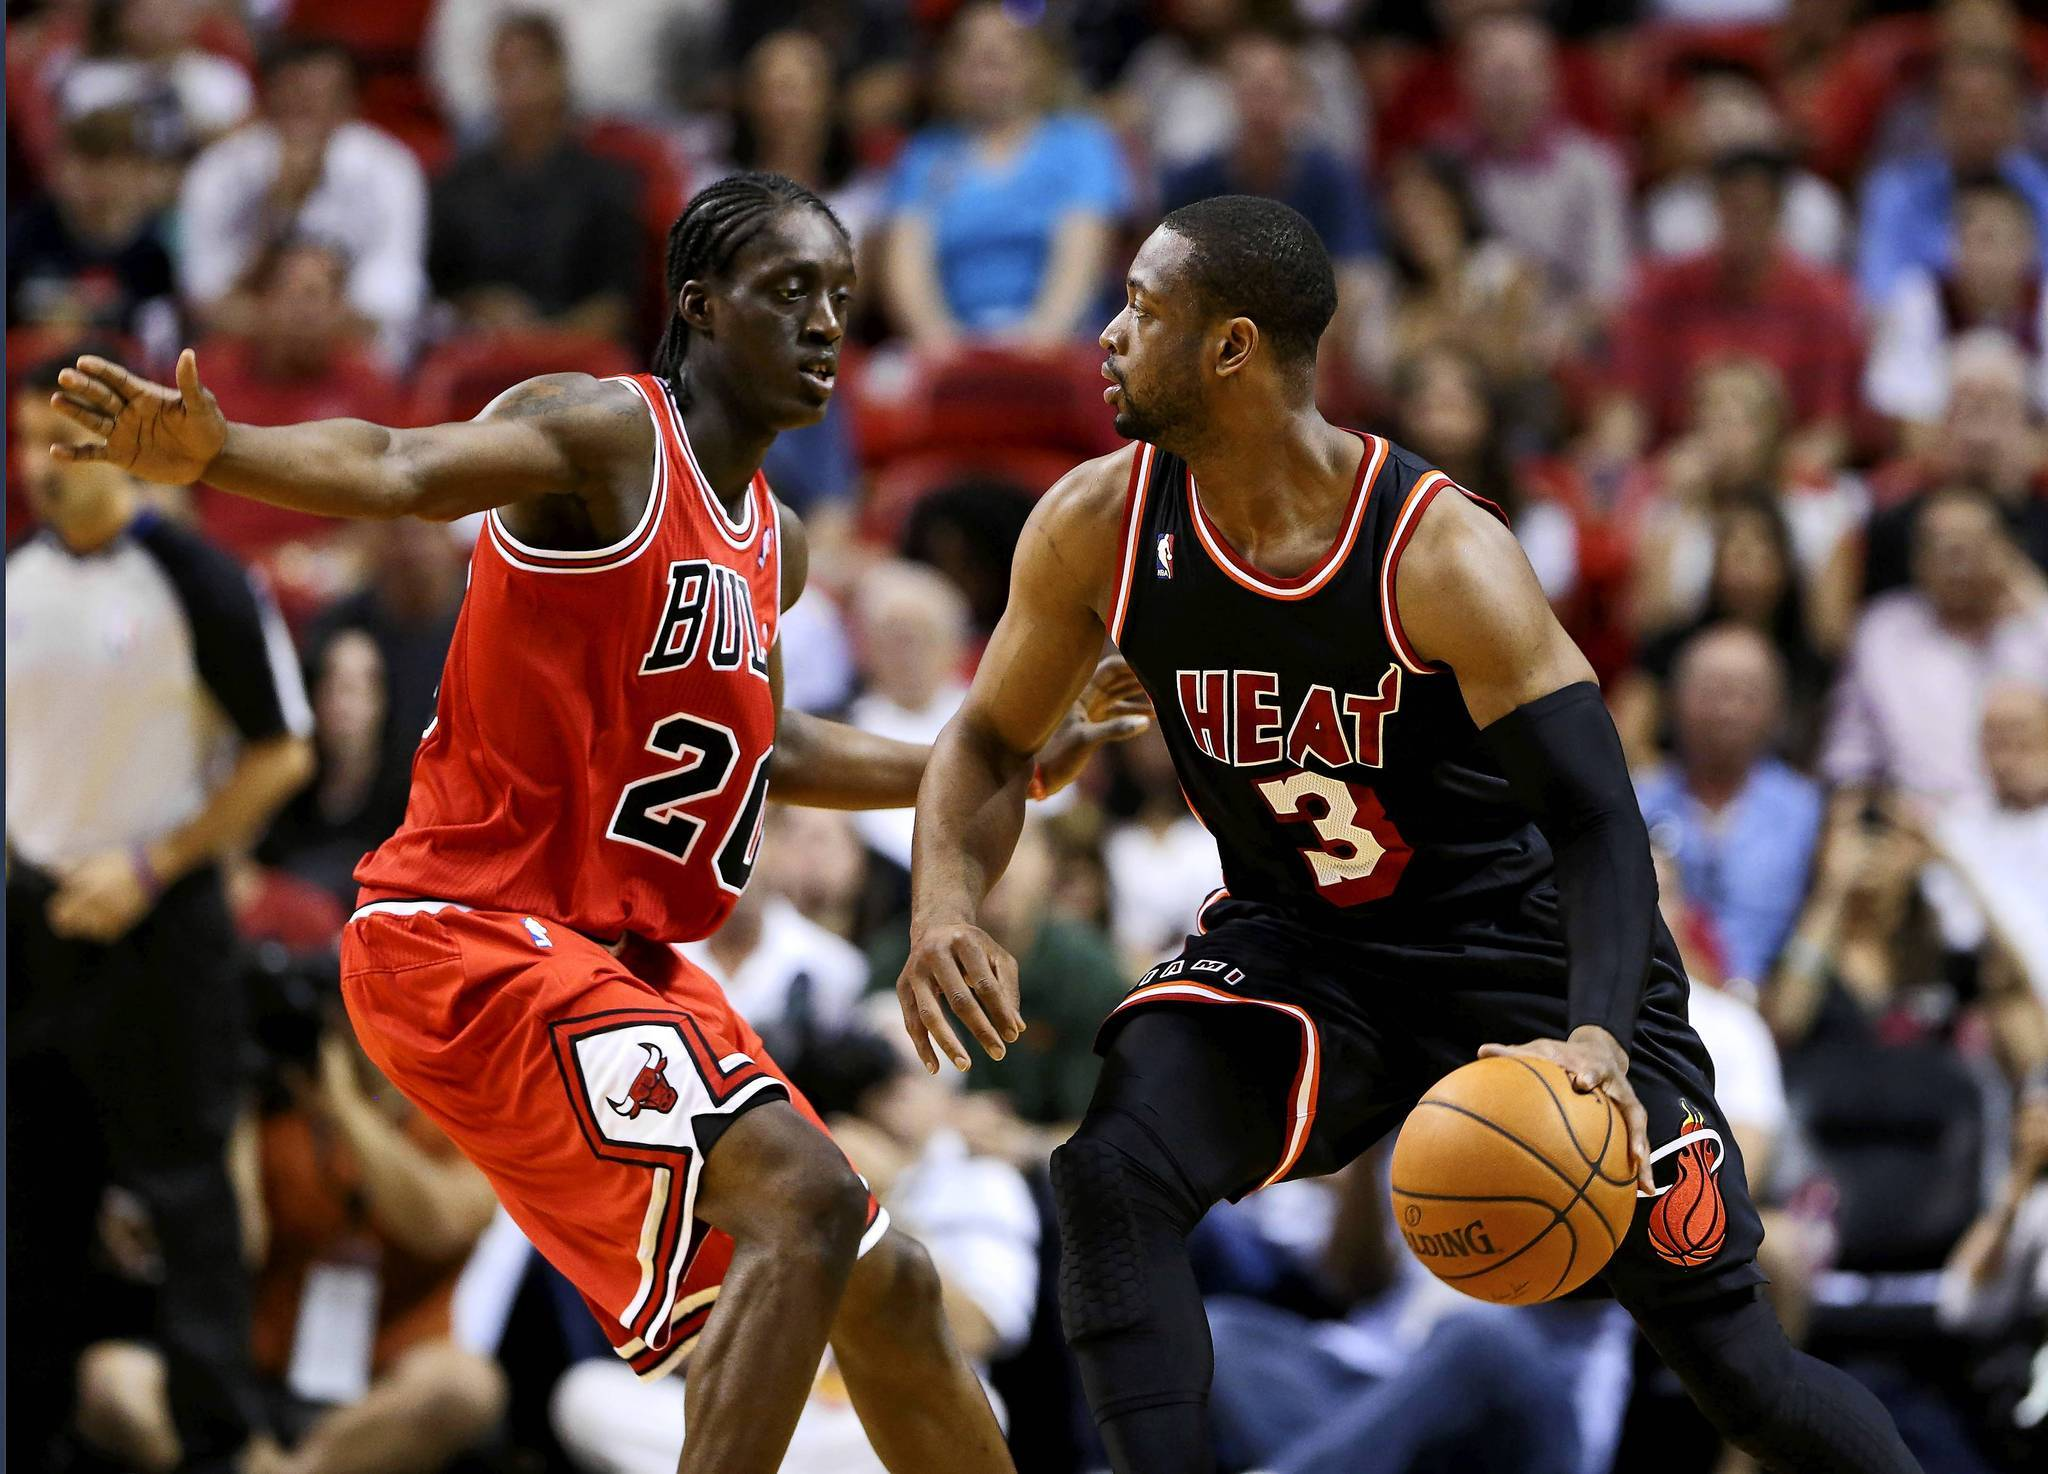 The Bulls Tony Snell (left) guards Dwyane Wade of the Heat during a game in February.